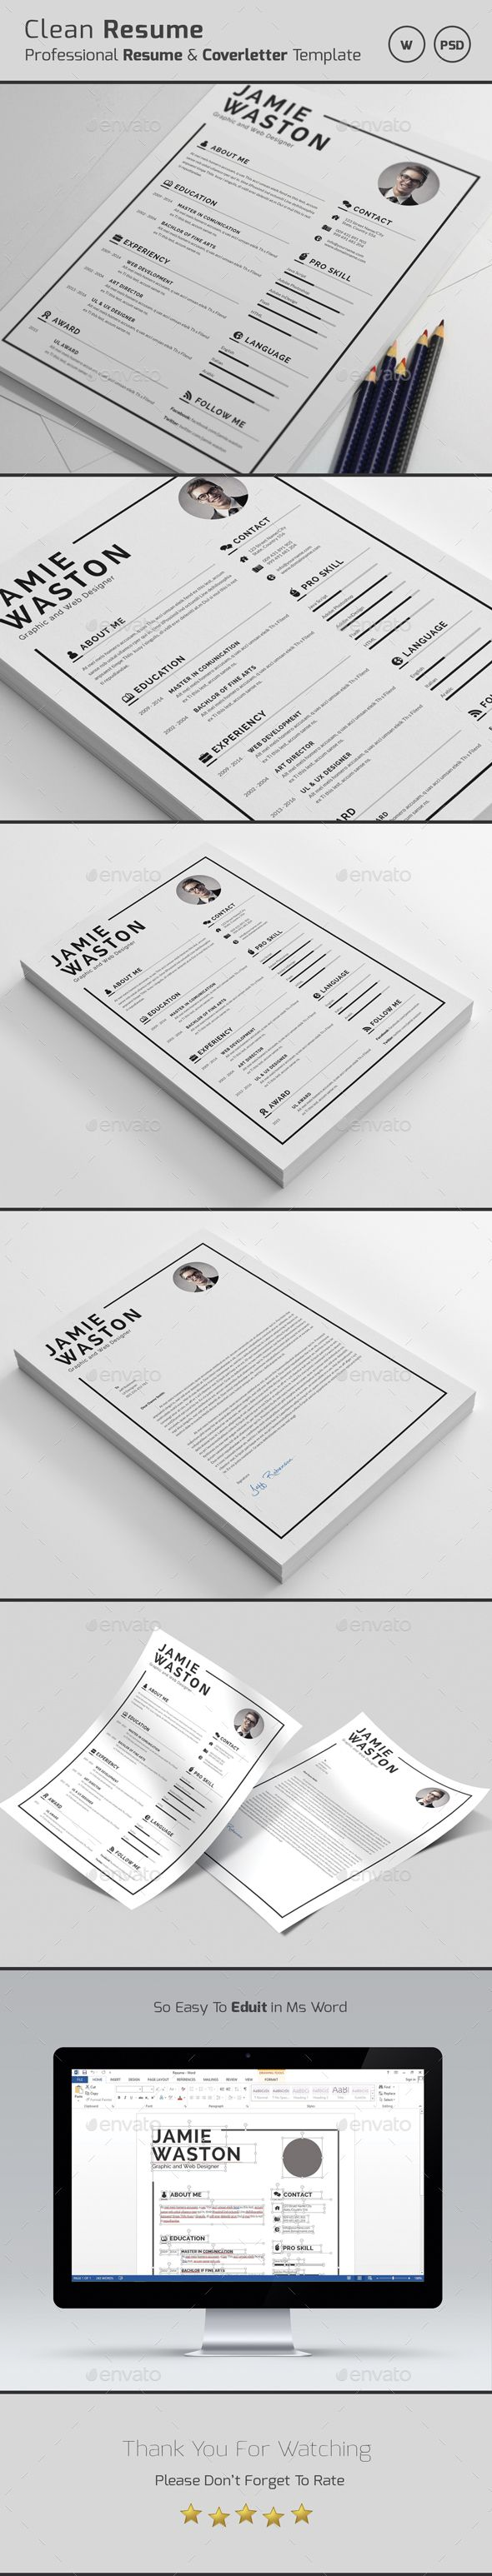 Resume | Resume cover letter template, Resume cover letters and ...